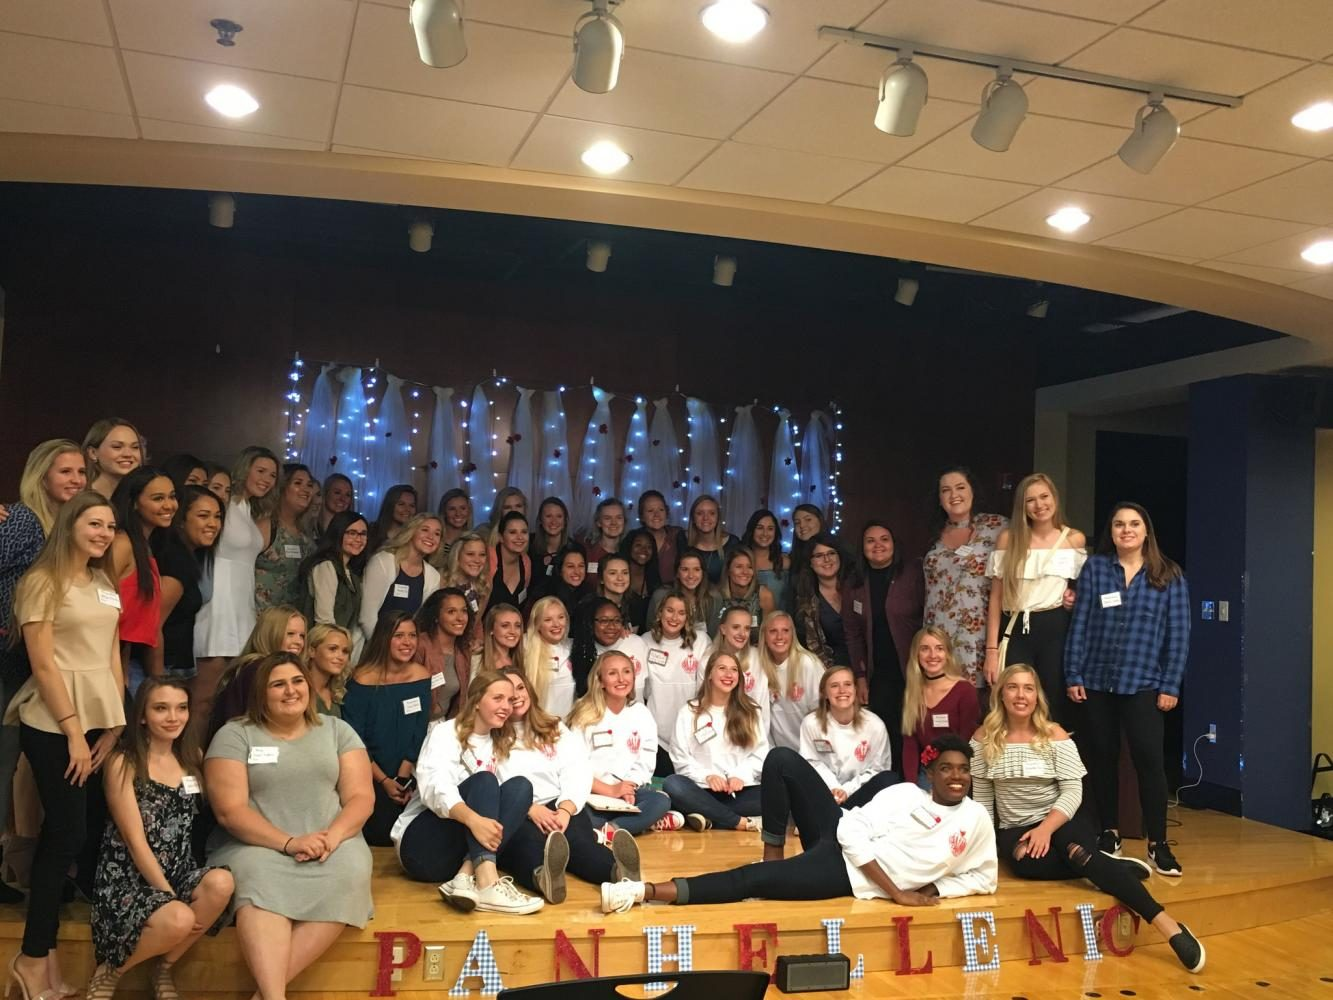 """Some potential new members and Panhellenic members posed for a picture before the first day of primary recruitment. The theme this year for recruitment was """"There is no place like home."""" All the ladies who went through recruitment were looking for a place to call home."""